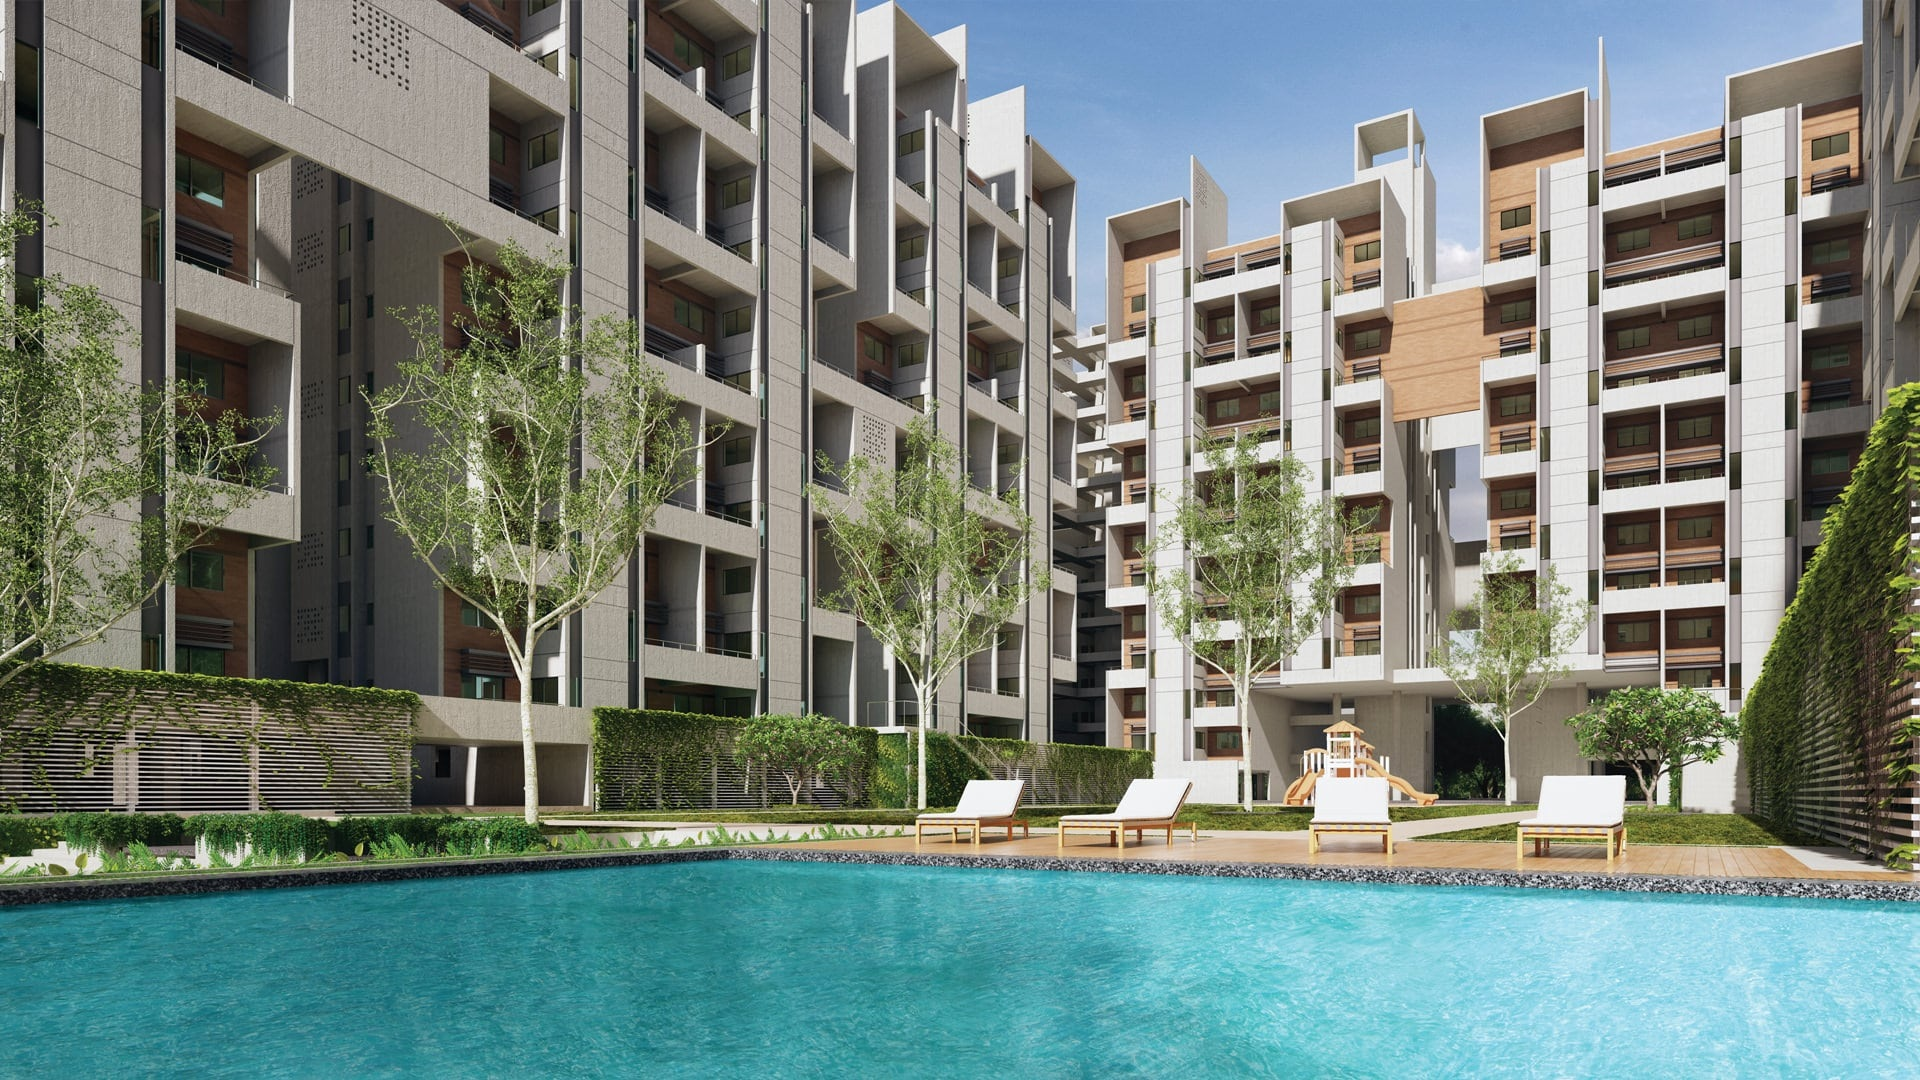 rohan abhilasha project amenities features1